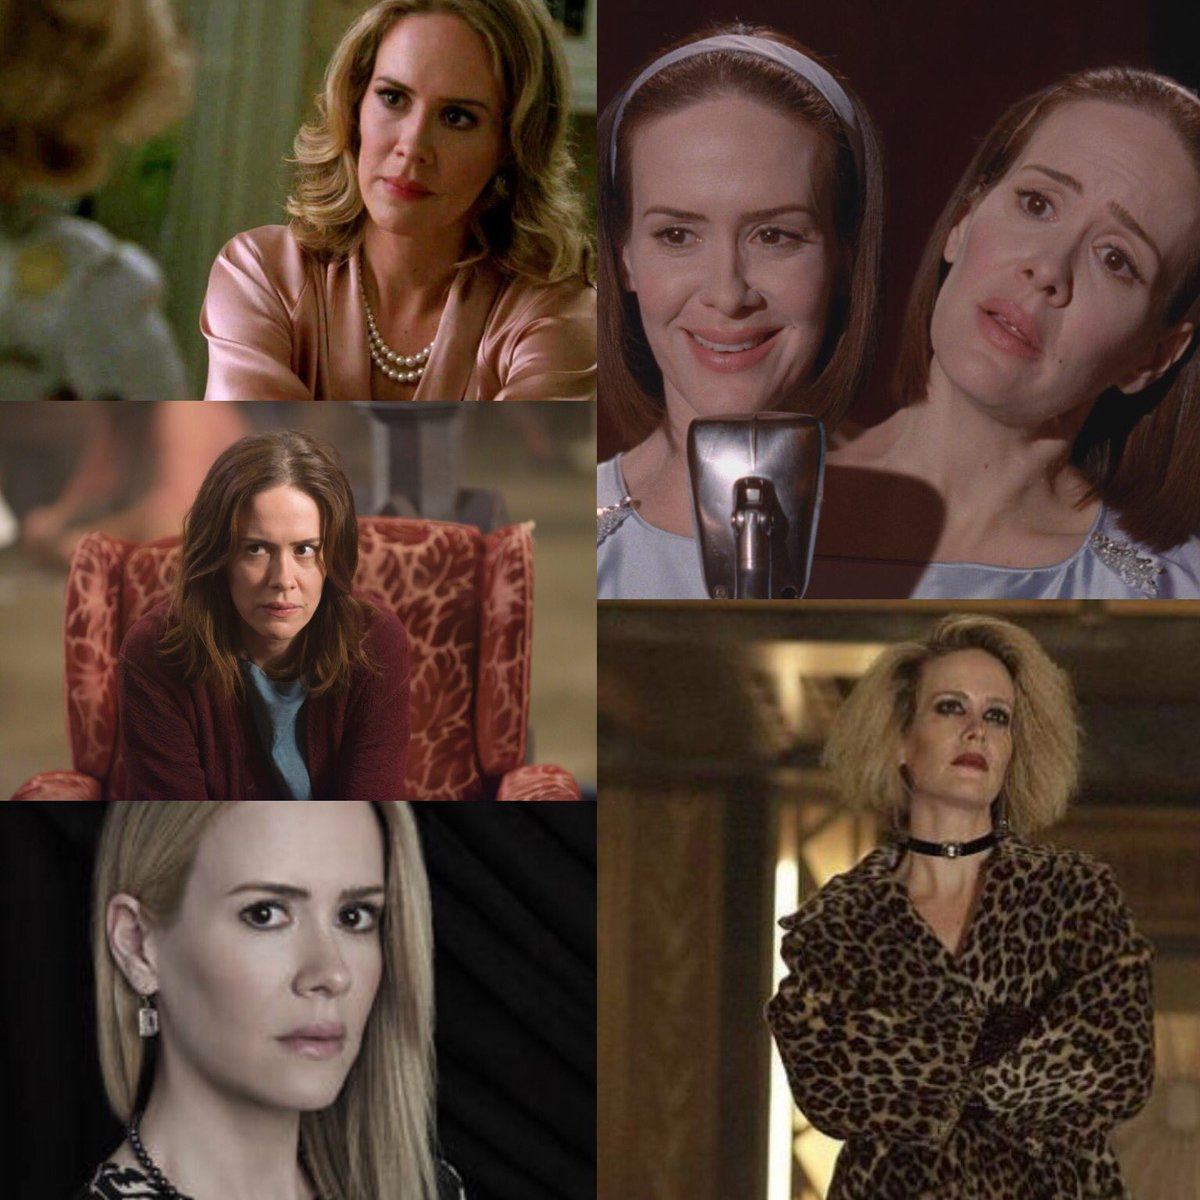 With Evan confirmed not to return, this makes Sarah Paulson the only cast member to appear in all 9 Seasons. #AHS1984 <br>http://pic.twitter.com/Dbz84j2gAg